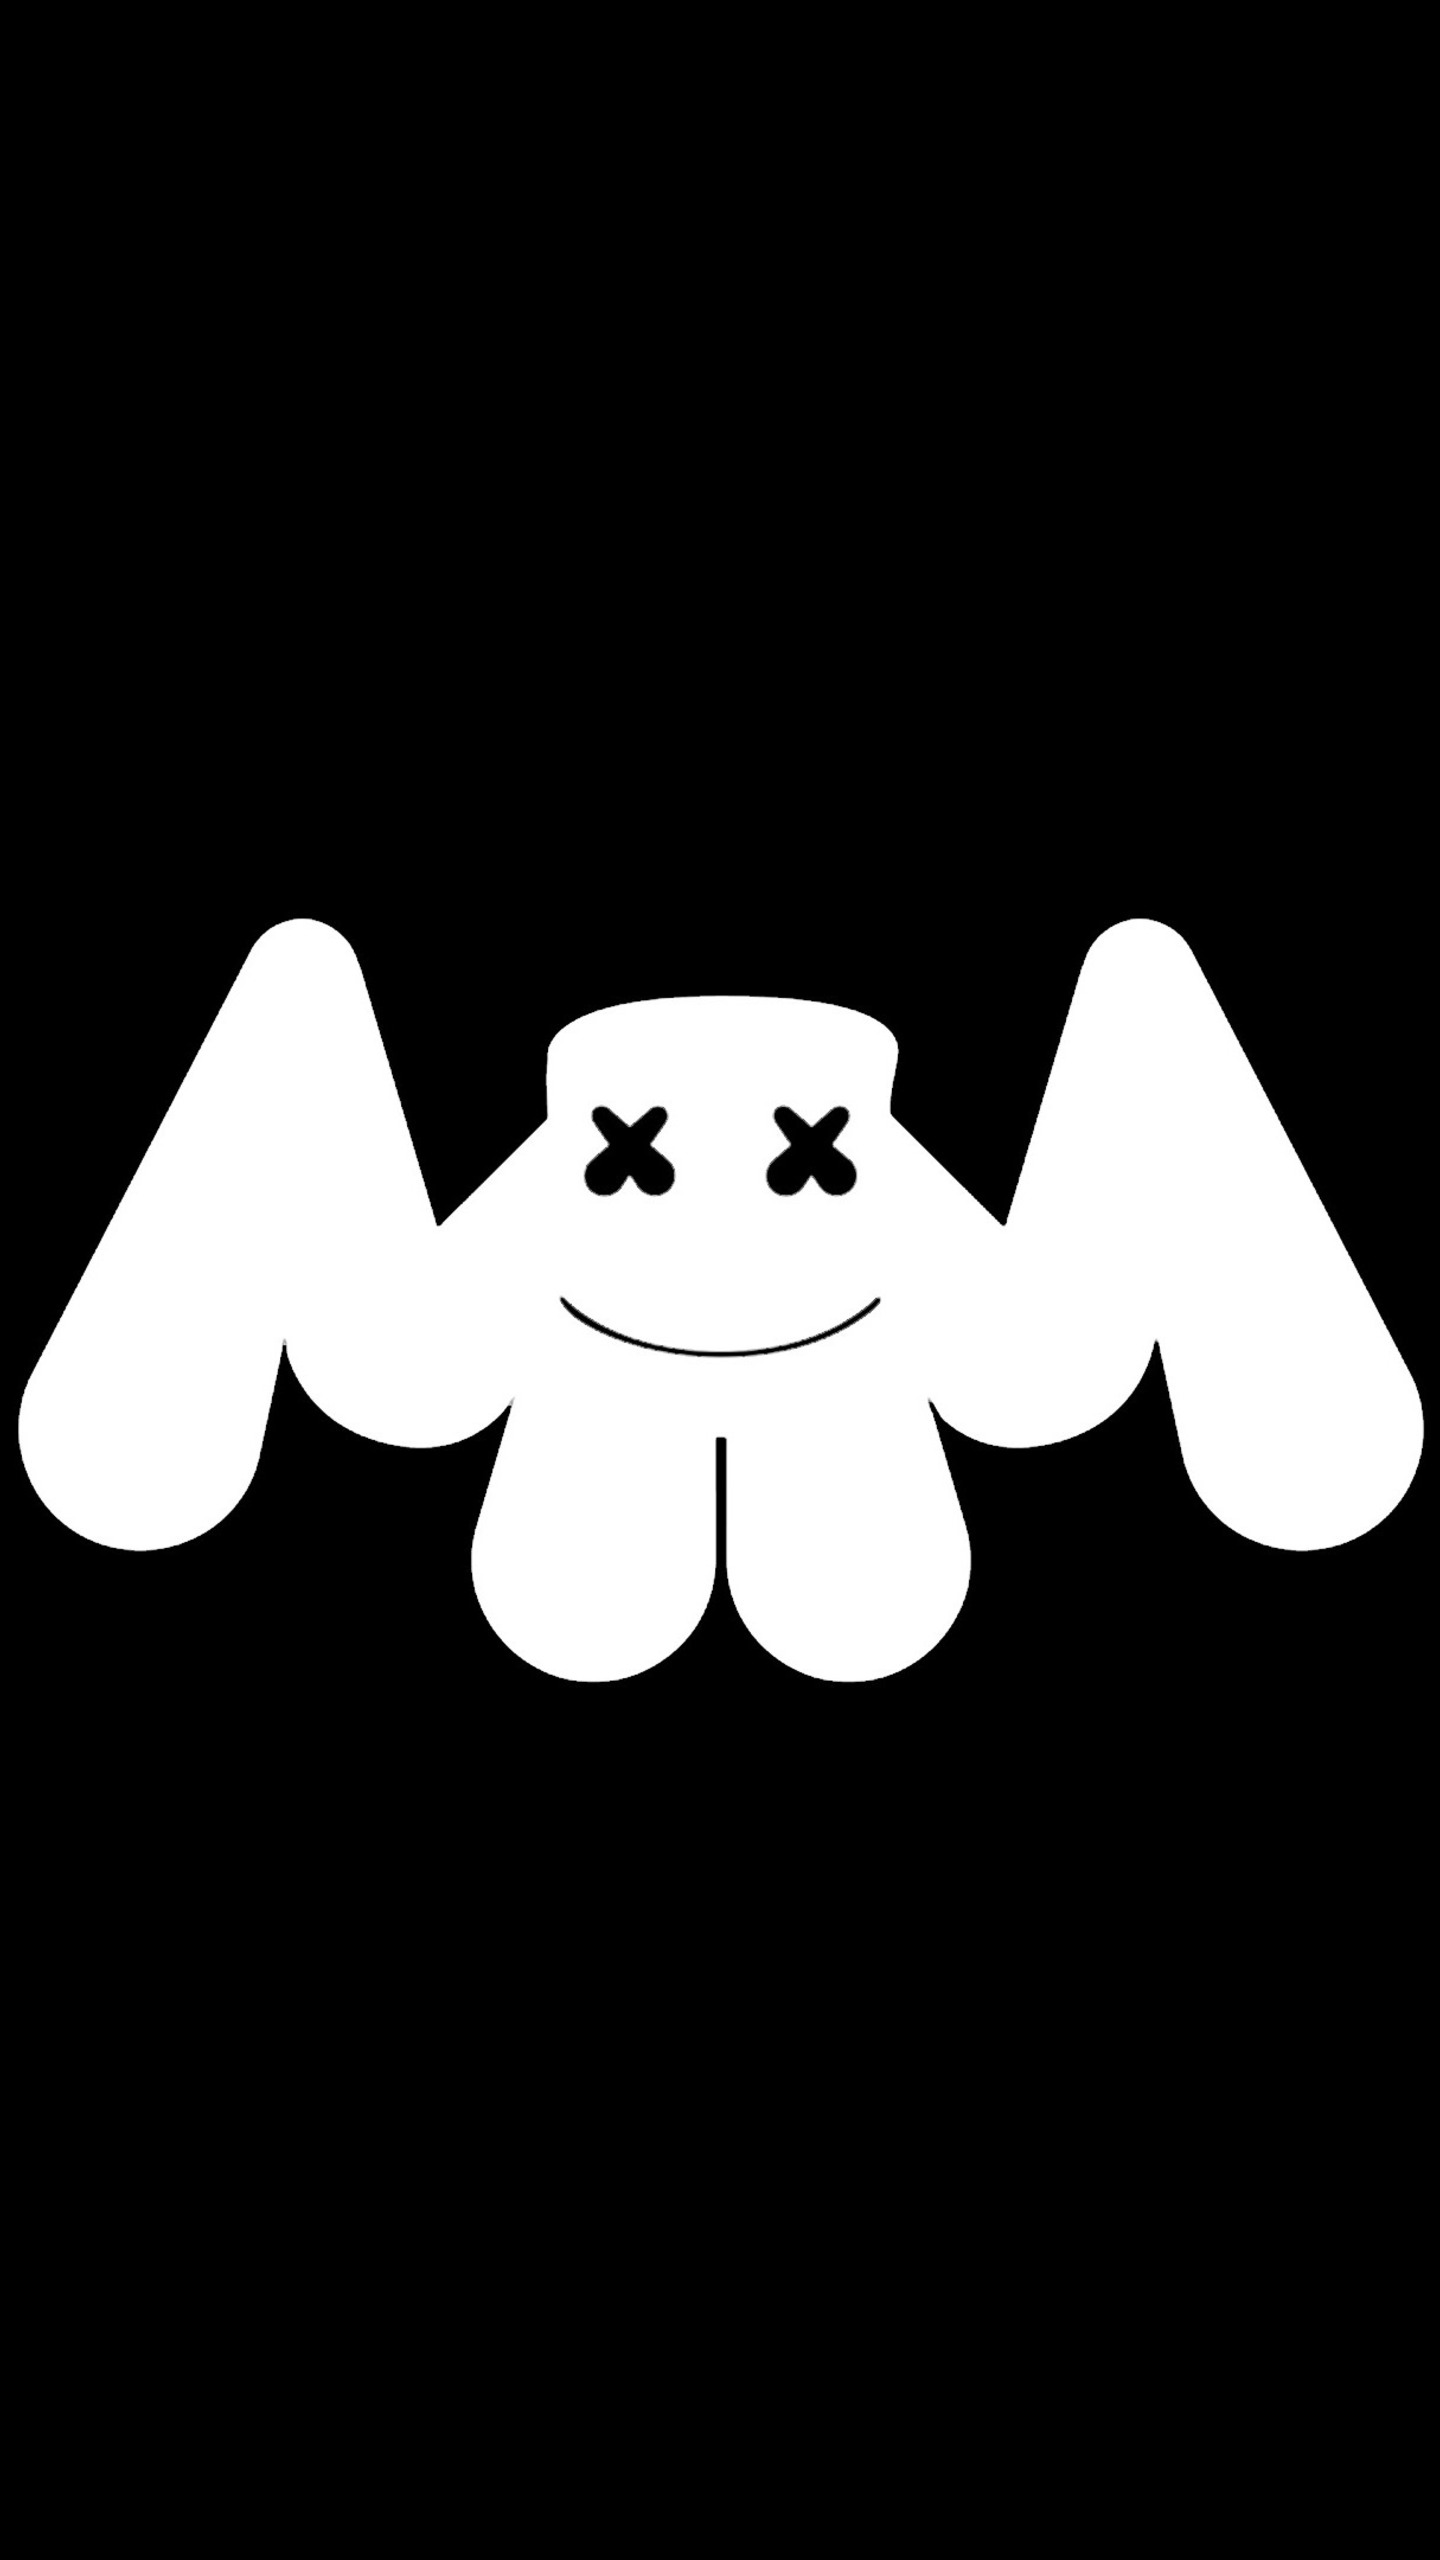 marshmello-logo-dark-to.jpg